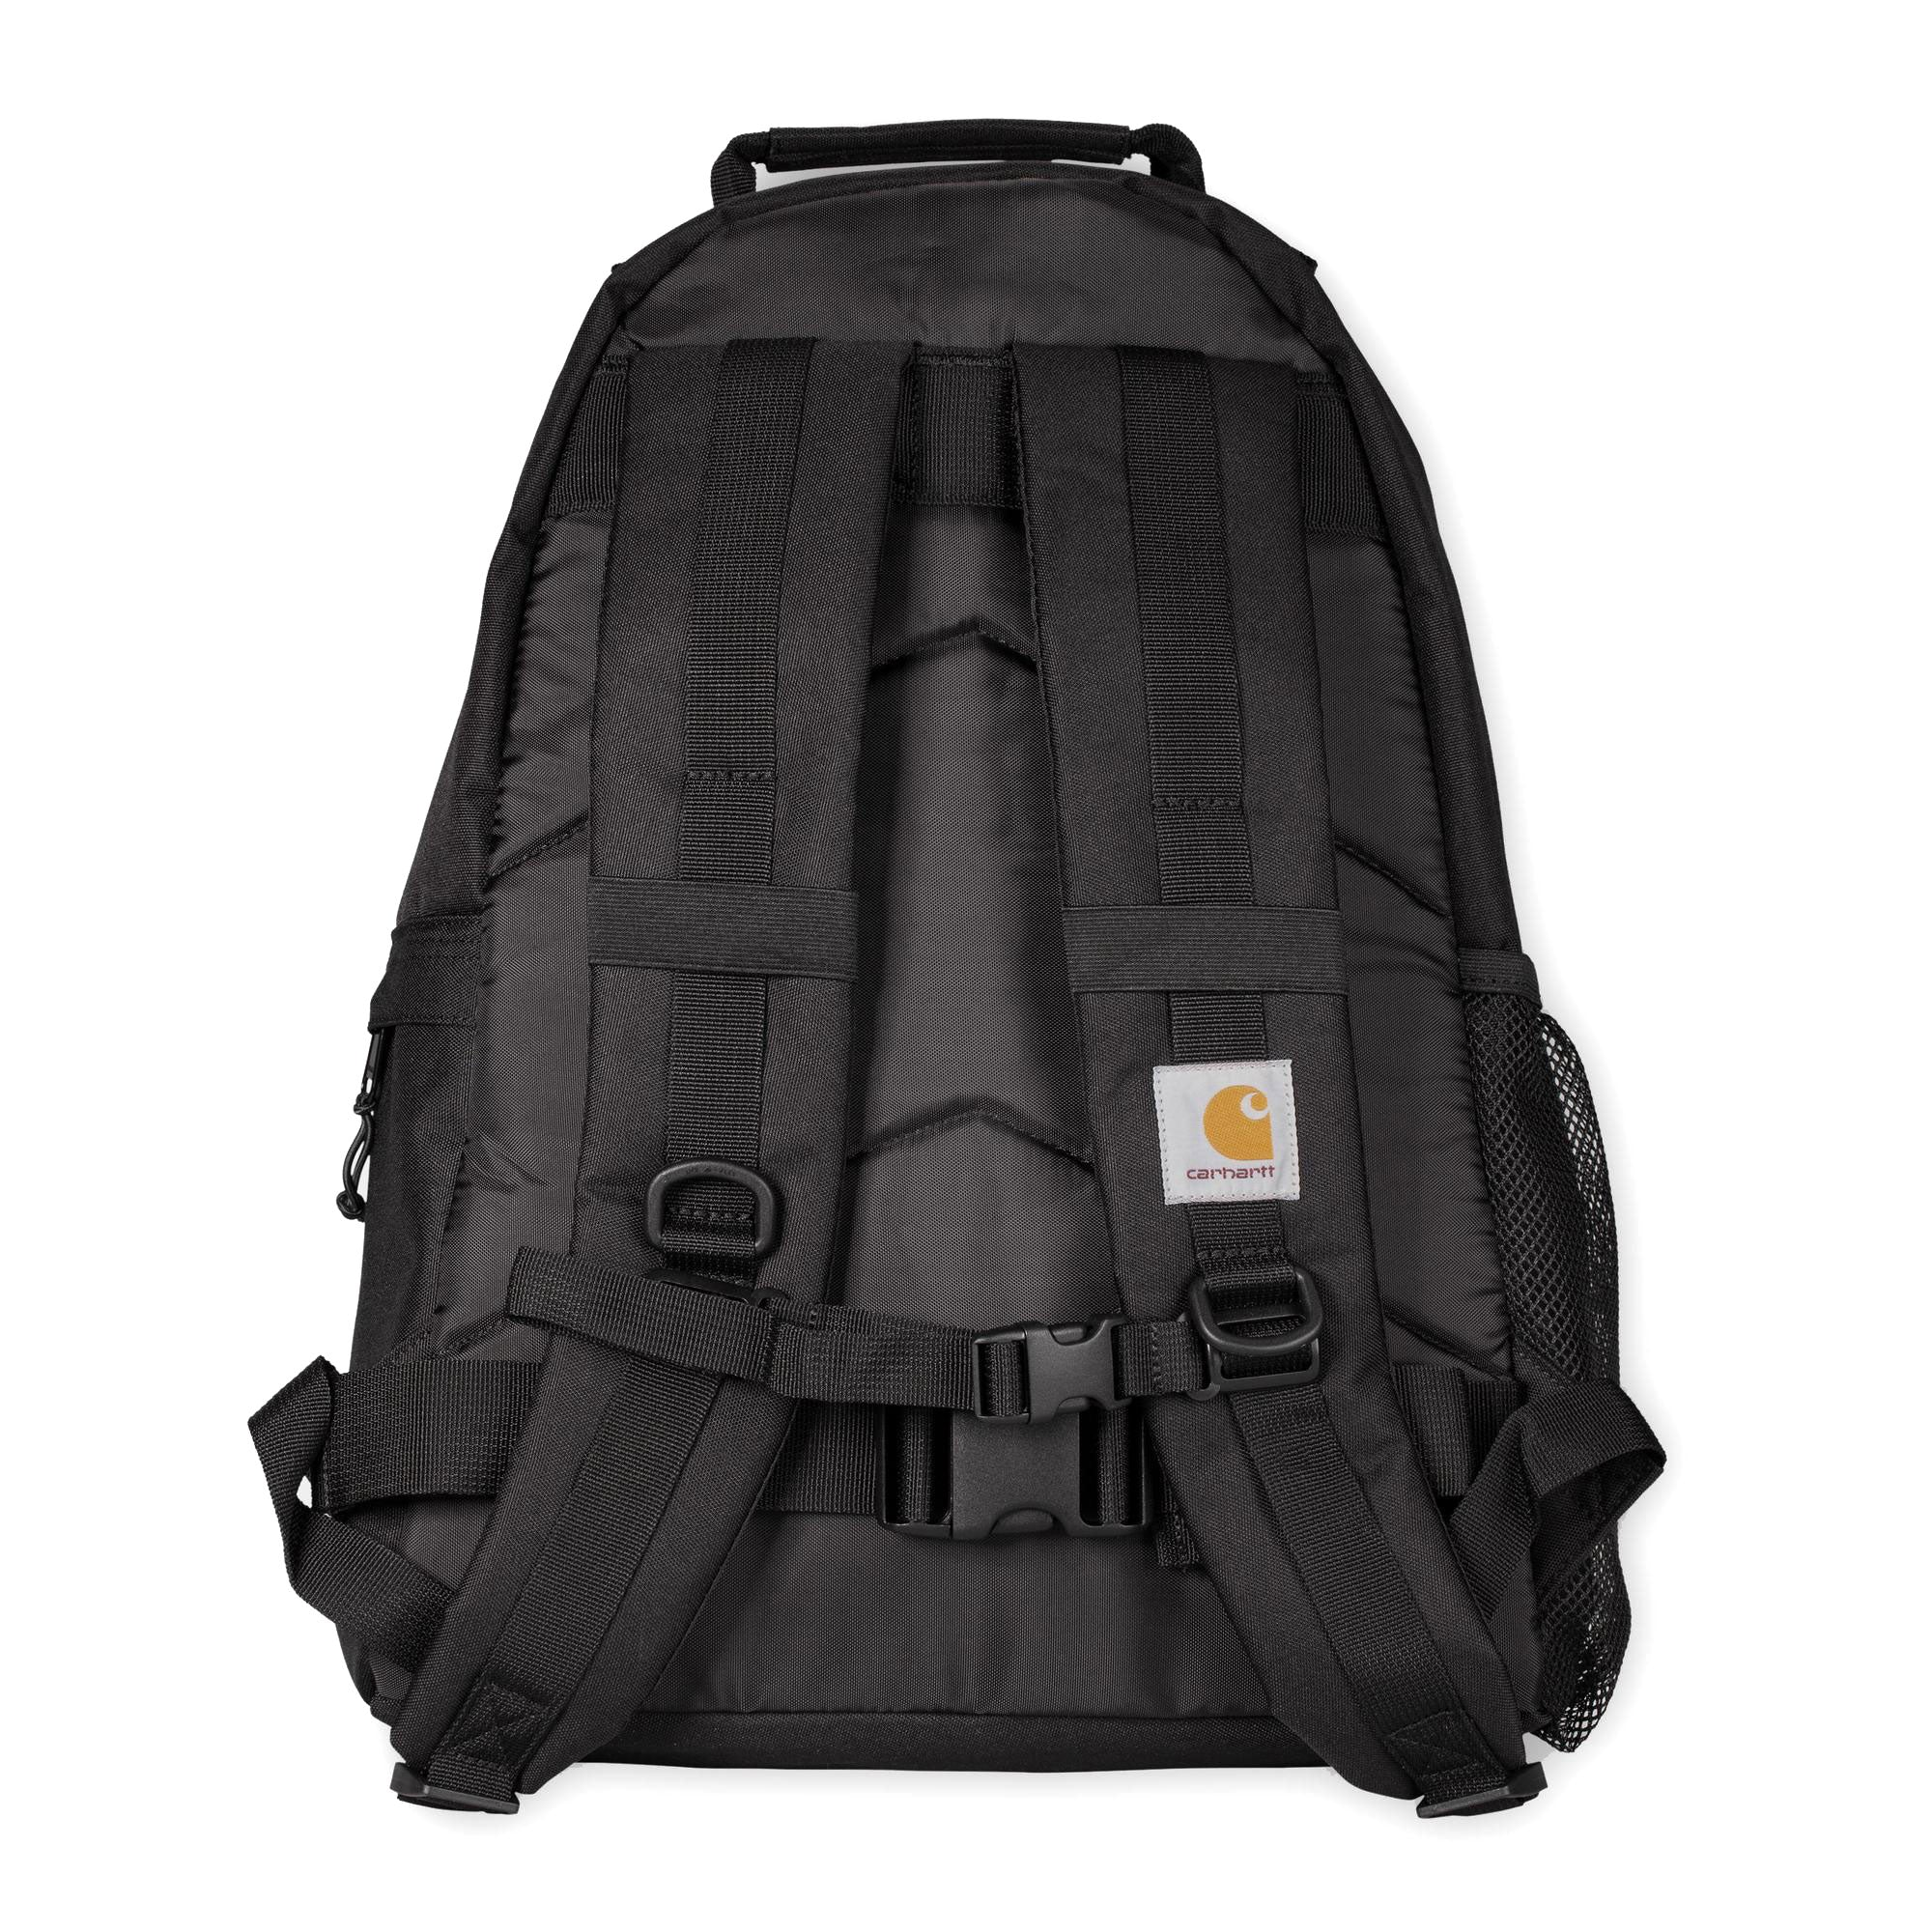 Carhartt Kickflip Backpack Product Photo #2